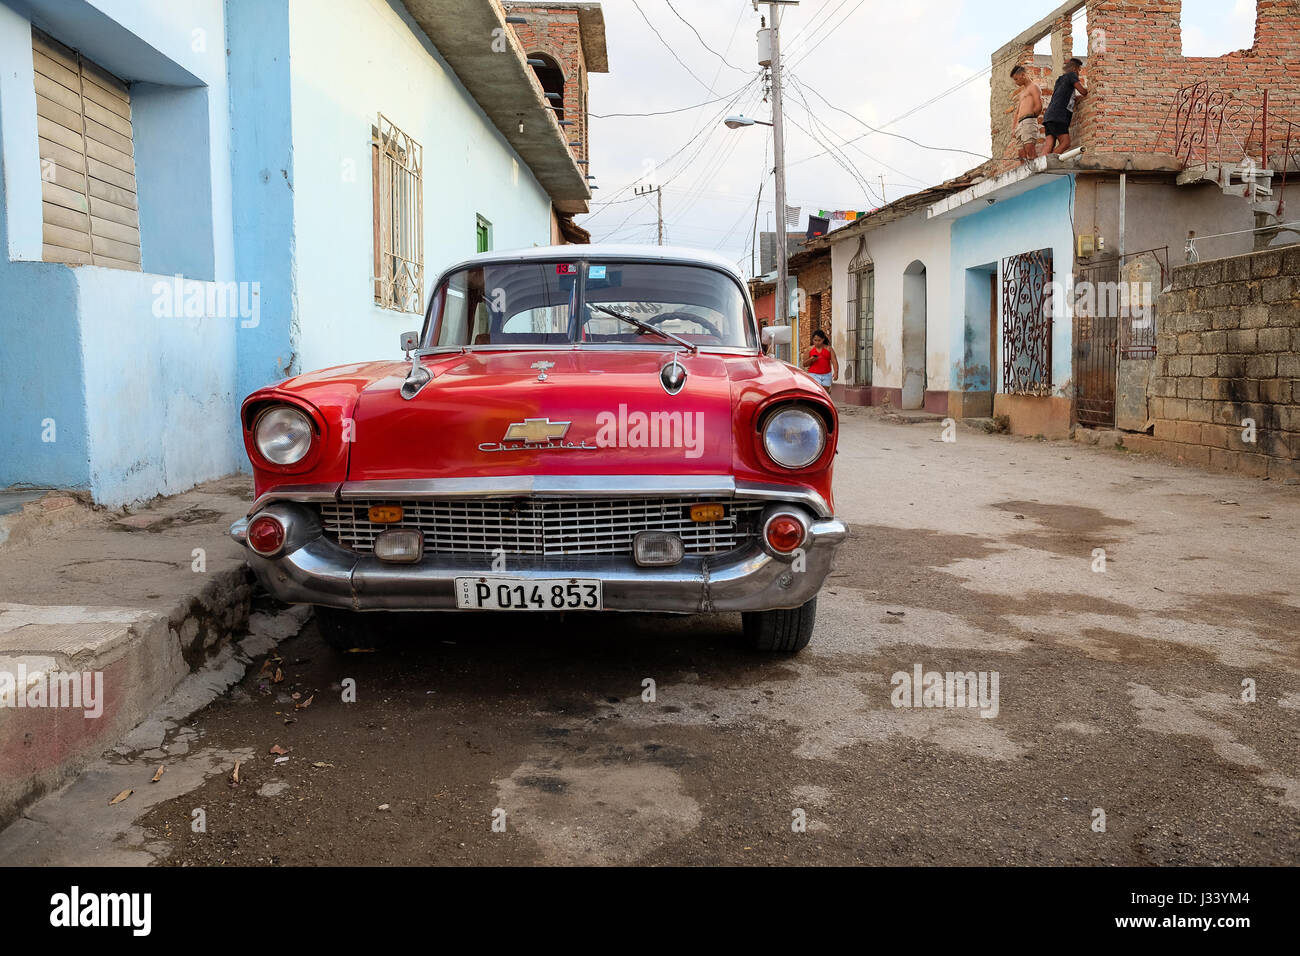 TRINIDAD, CUBA: APRIL 15 2017: American classic car in the street of ...